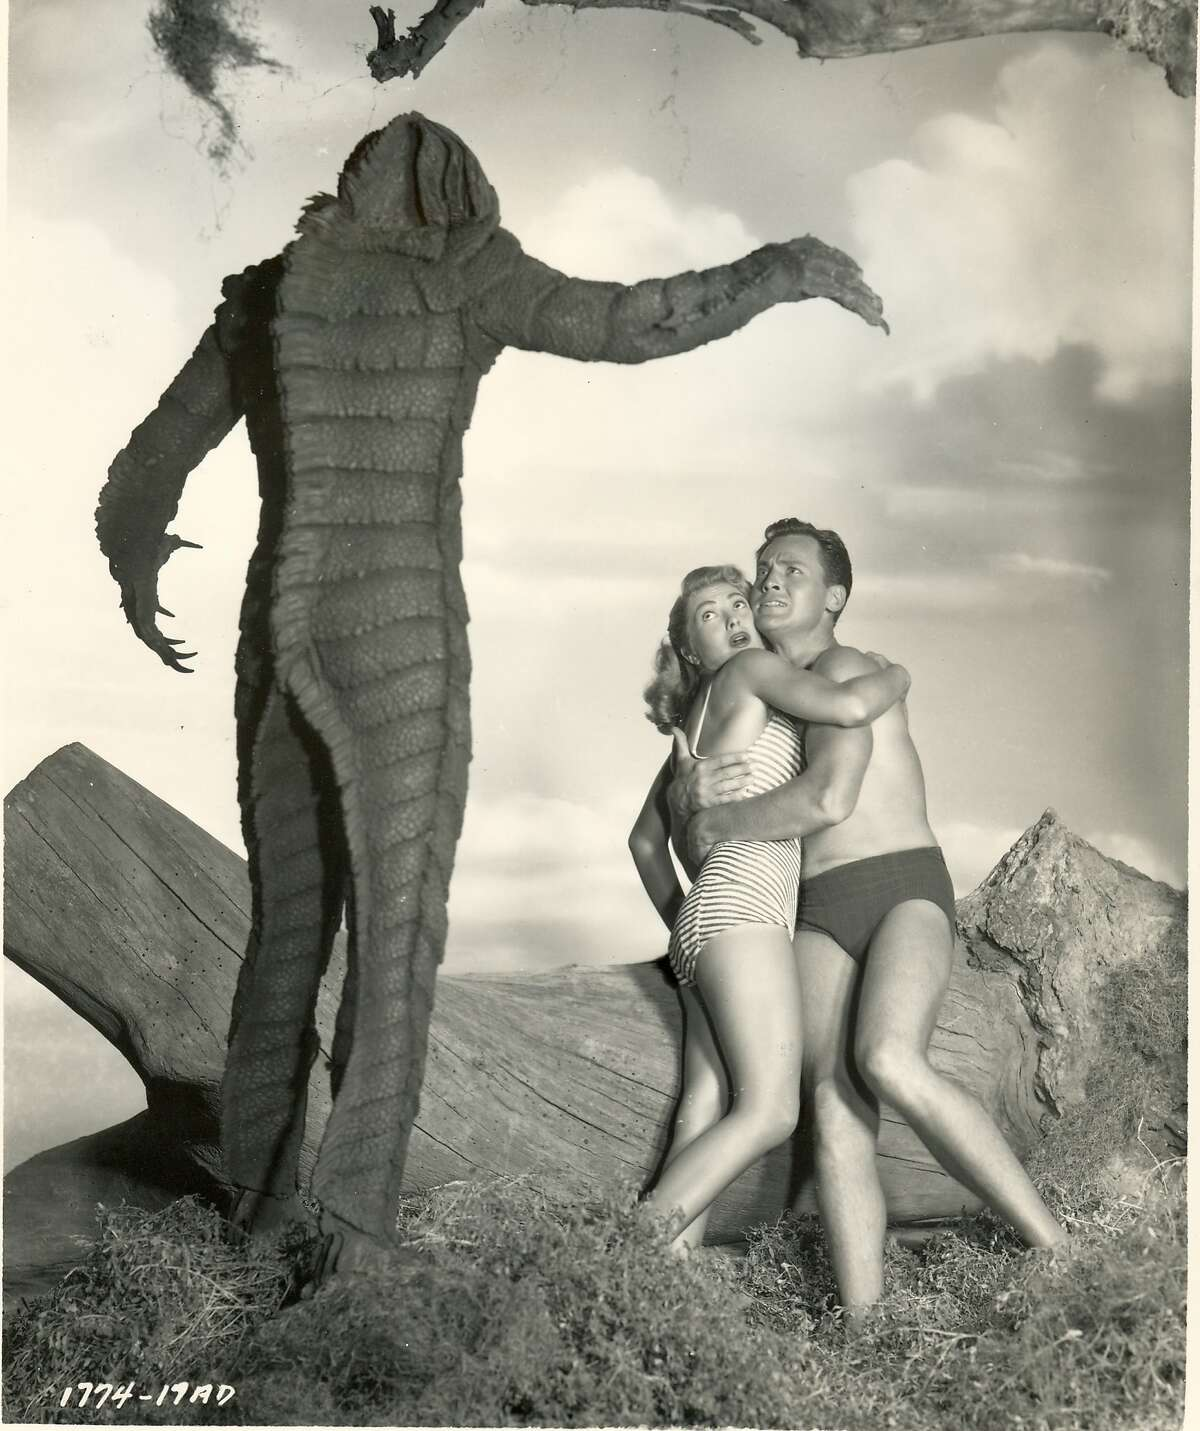 """After the Giants play the Brewers on Saturday, """"The Creature From the Black Lagoon"""" will be shown on on the jumbo ballpark screen during the second annual Creature Feature Night at AT&T Park. Bring a blanket and watch from the outfield."""